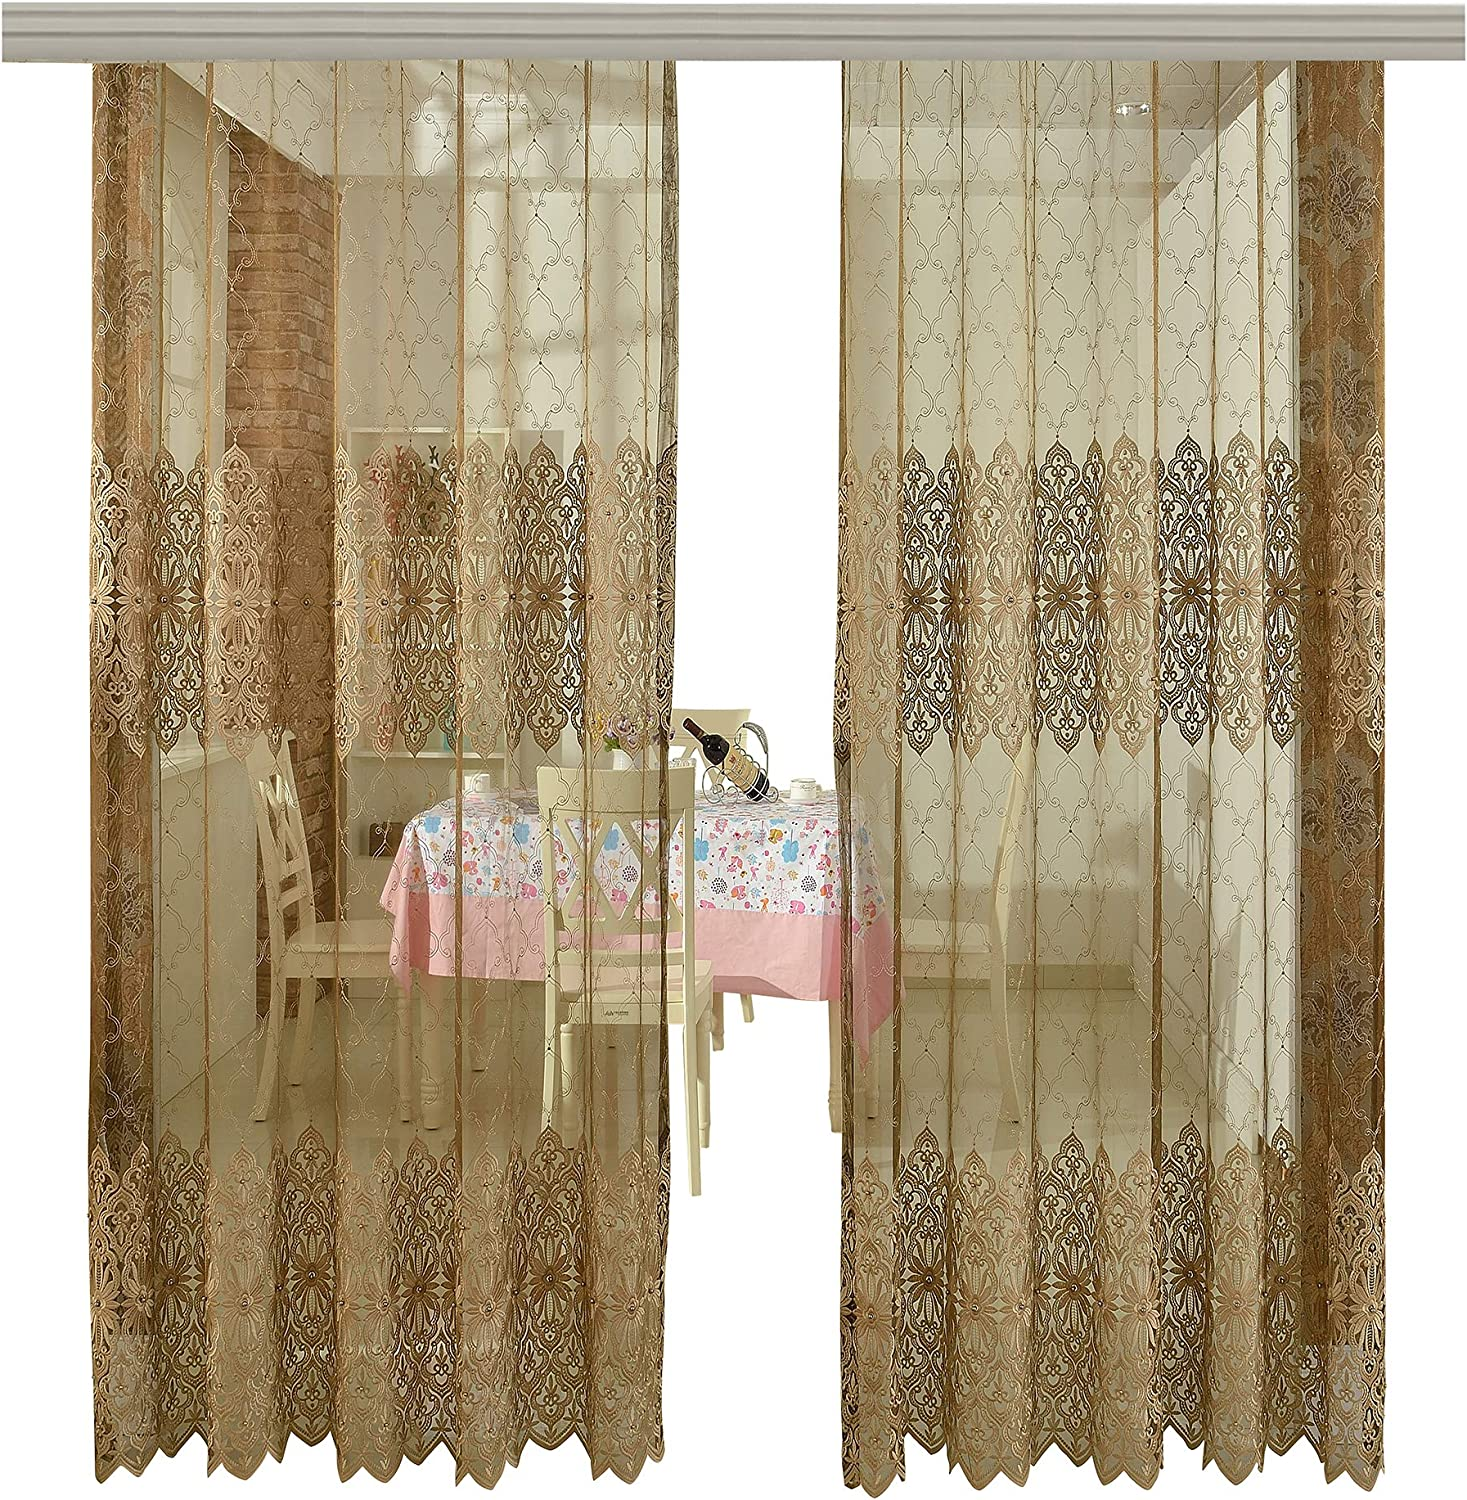 Europern Style Classic Pattern Embroidered Bead Sheer Curtains Window Treatment for Bedroom Living Room001(1 Panel, W 50 x L 102 inch, Brown) 1300294C1BYBBN1501028510